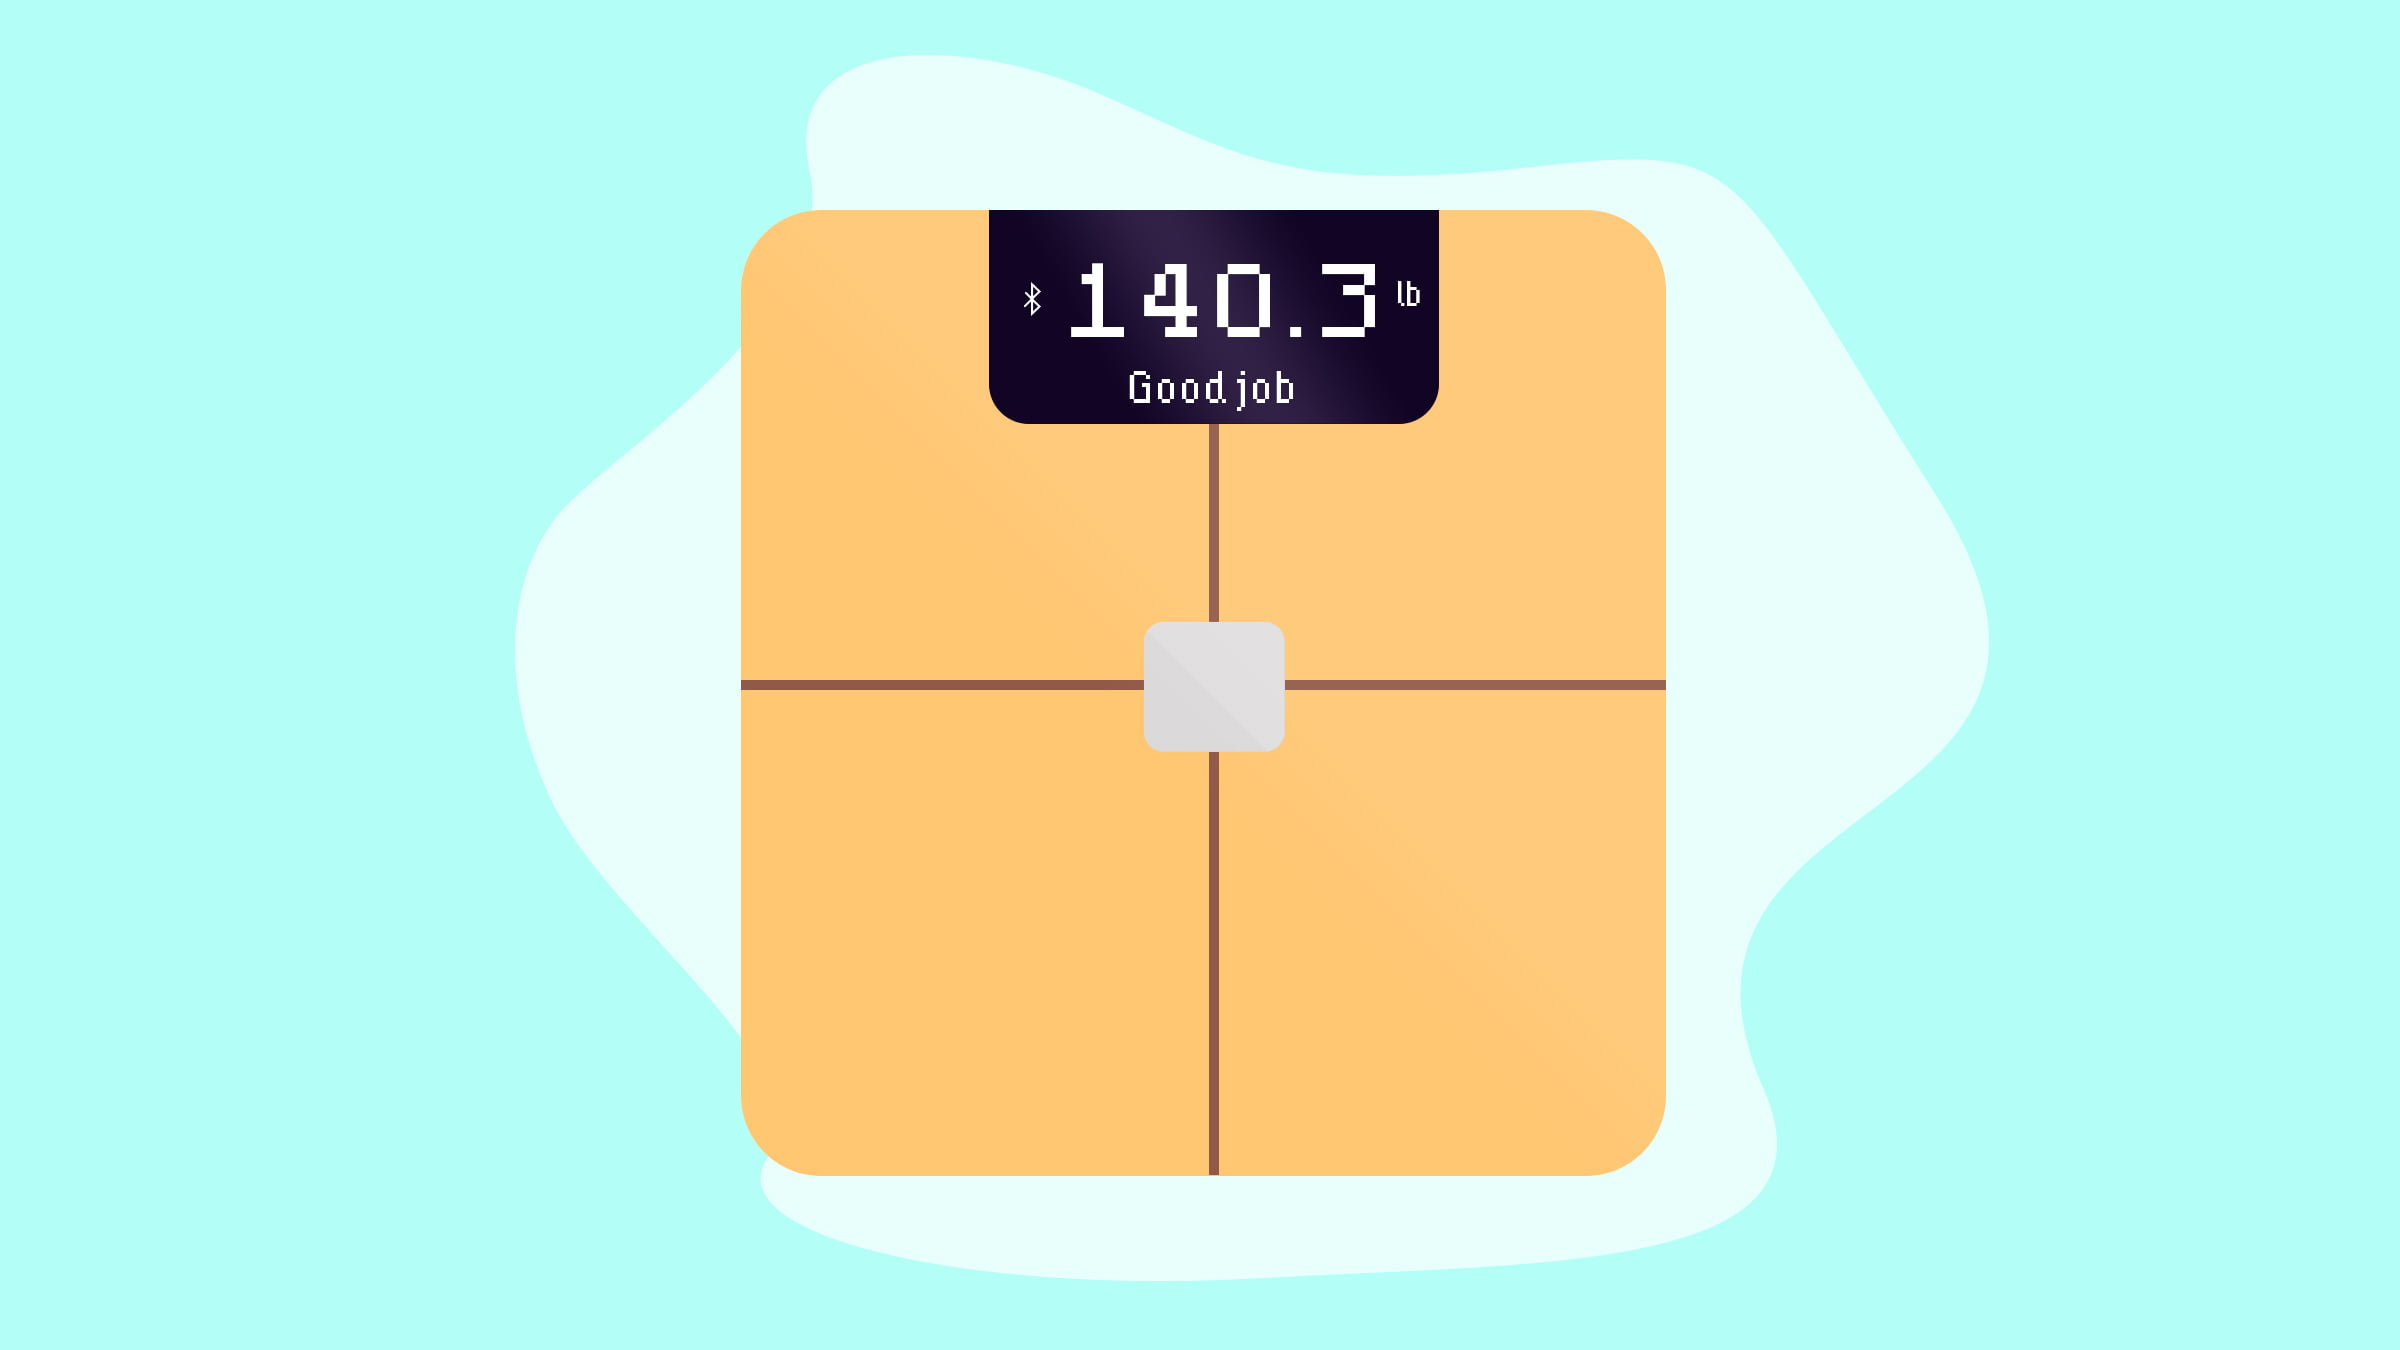 Illustration of a digital scale